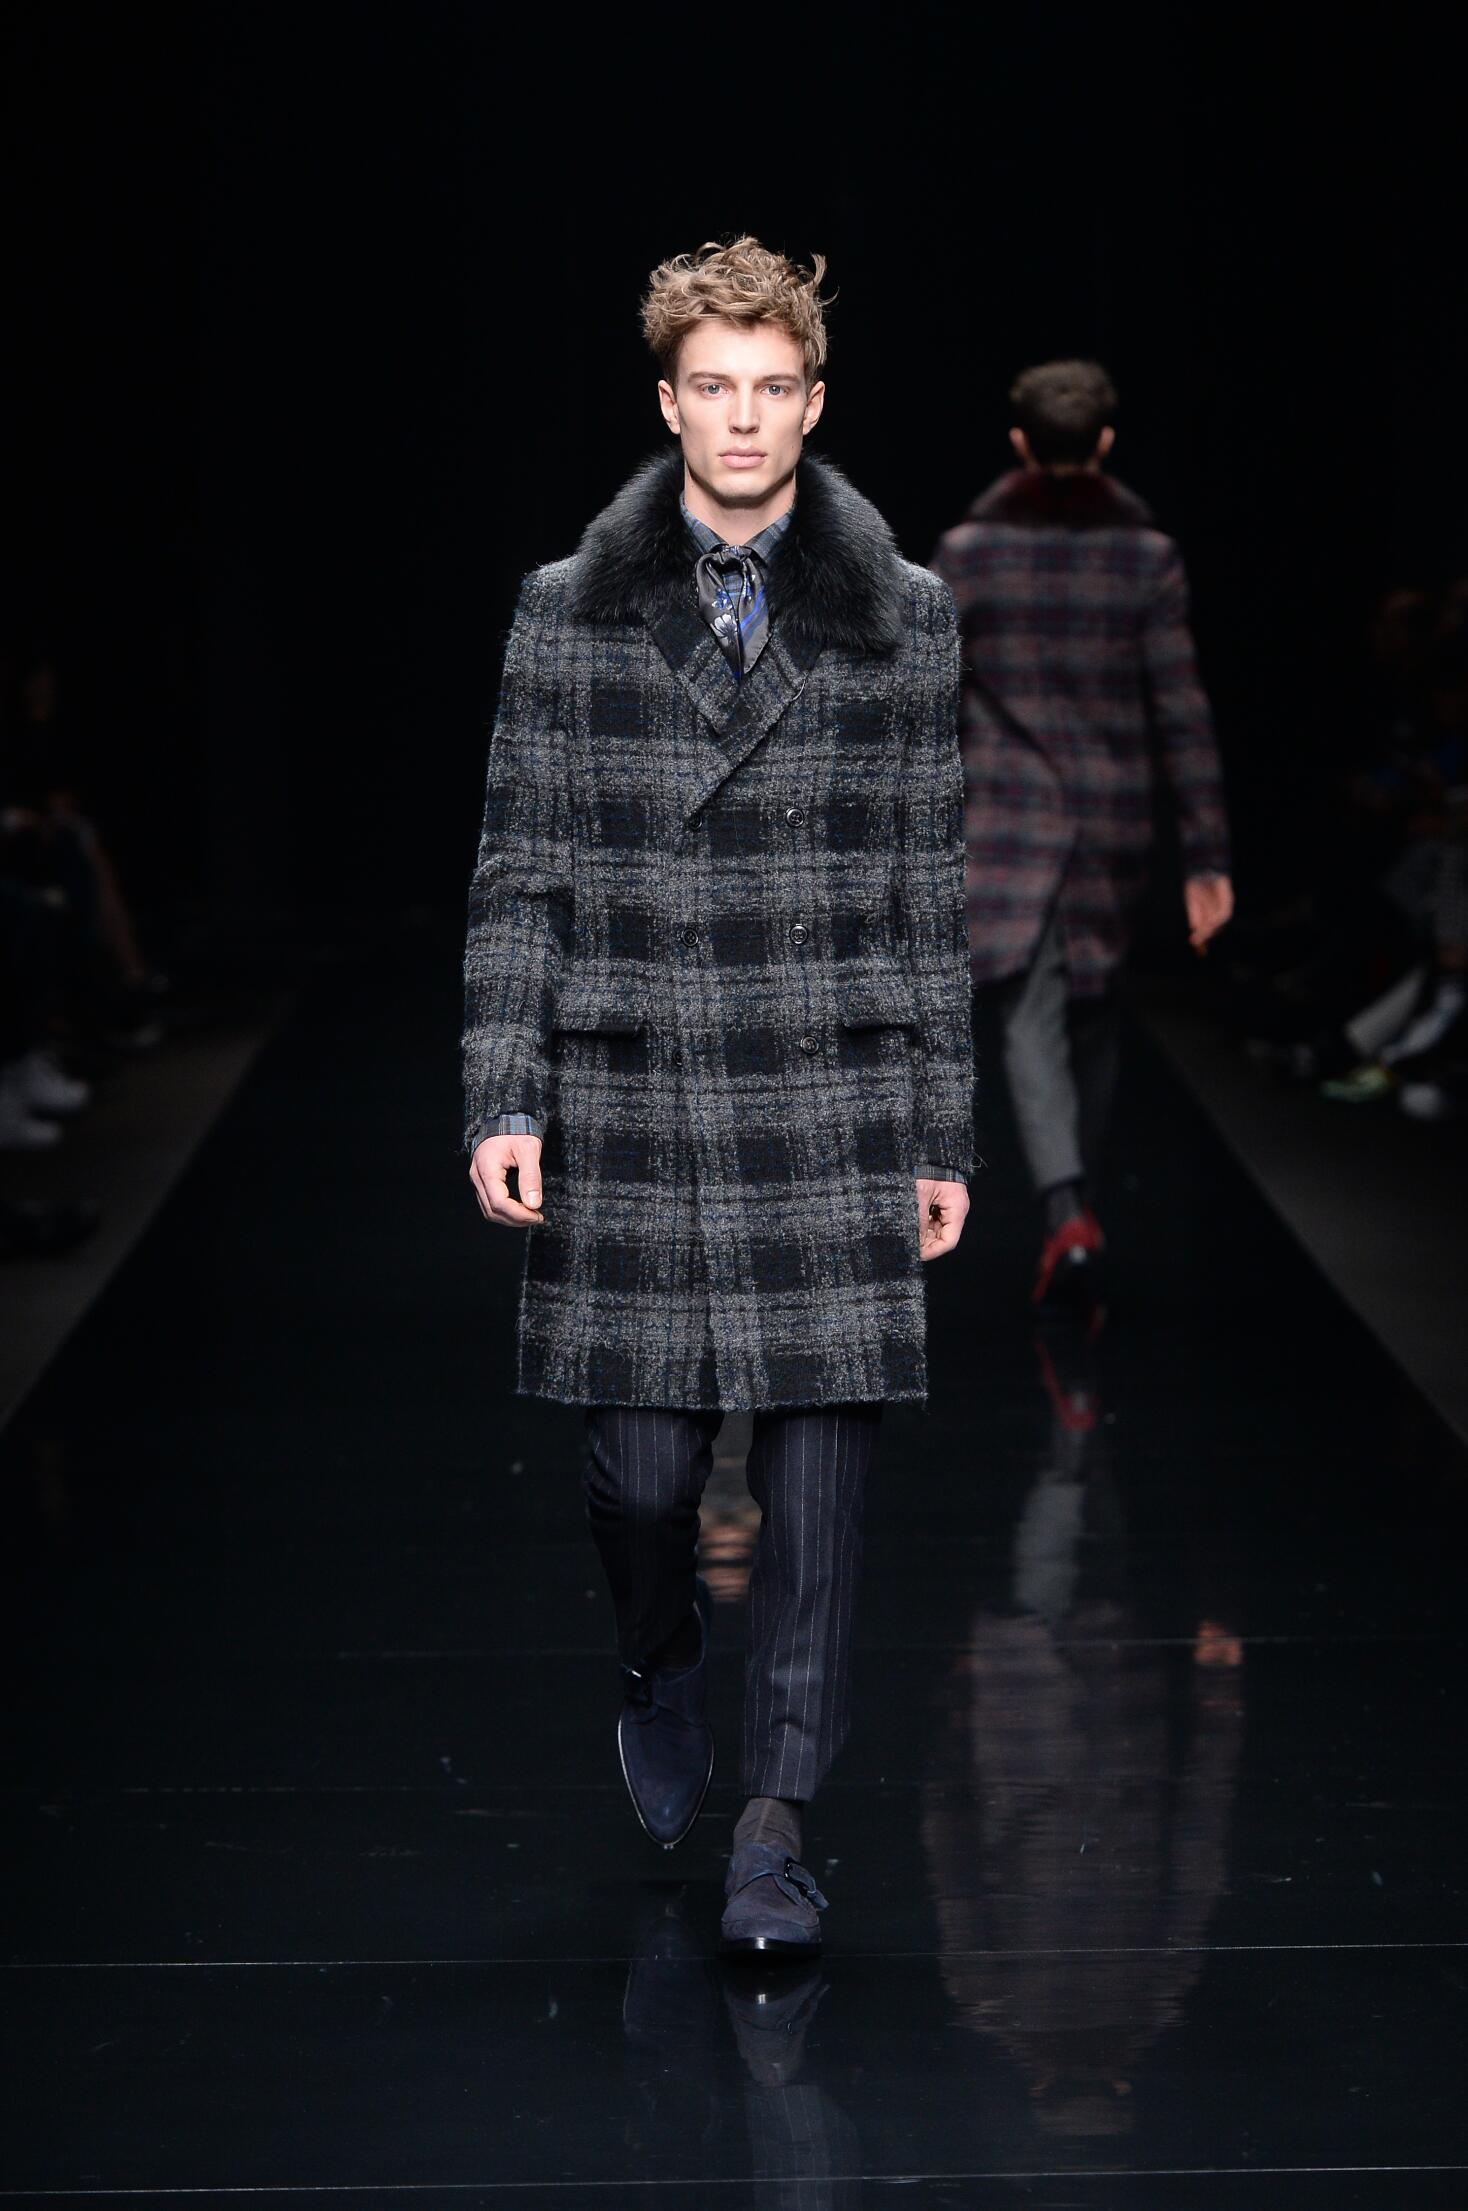 Fashion Man Model Ermanno Scervino Collection Catwalk